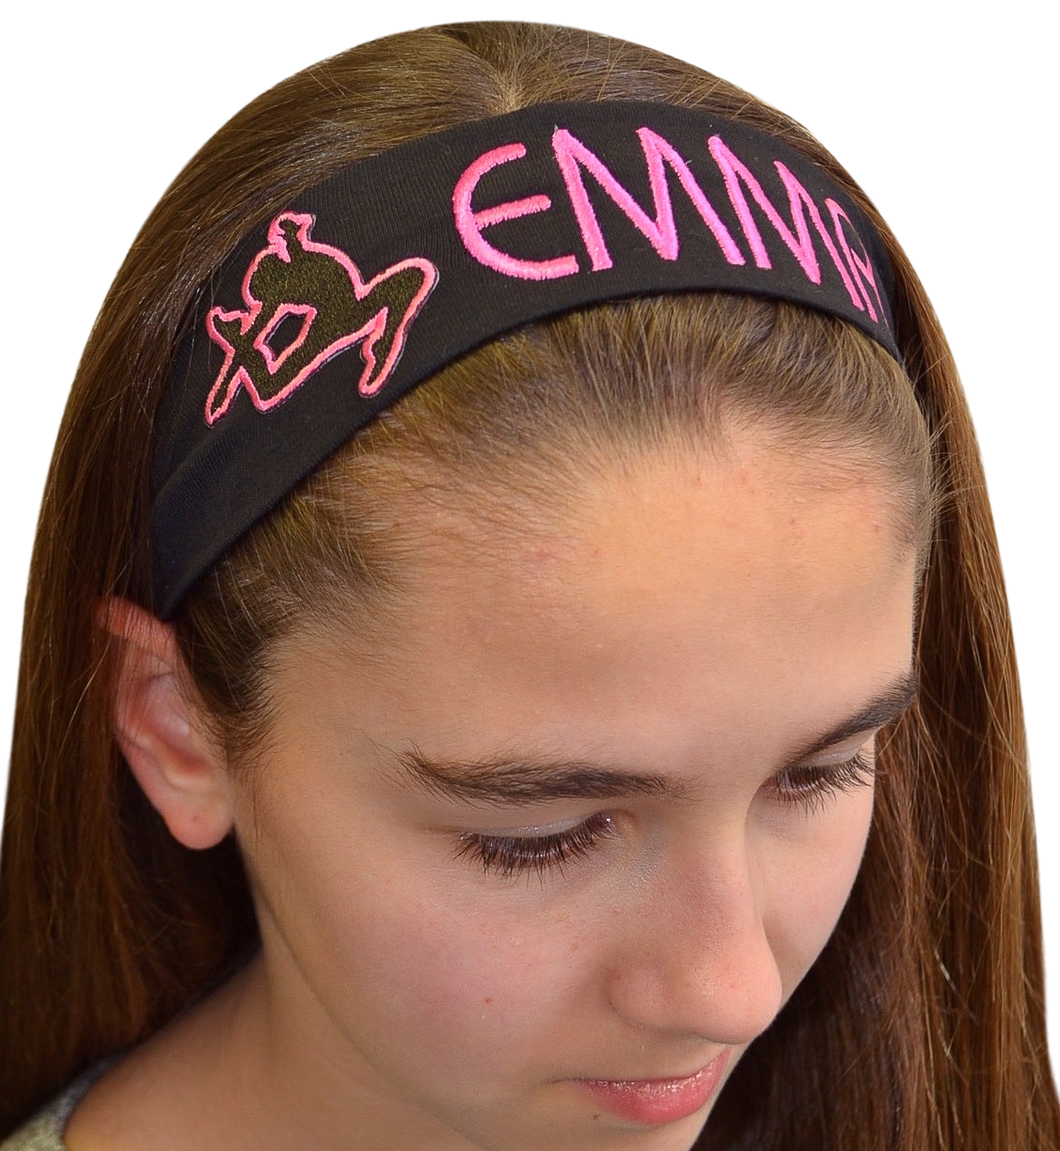 Personalized Monogrammed EMBROIDERED Gymnastics Cotton Stretch Headband - Quantity Discounts